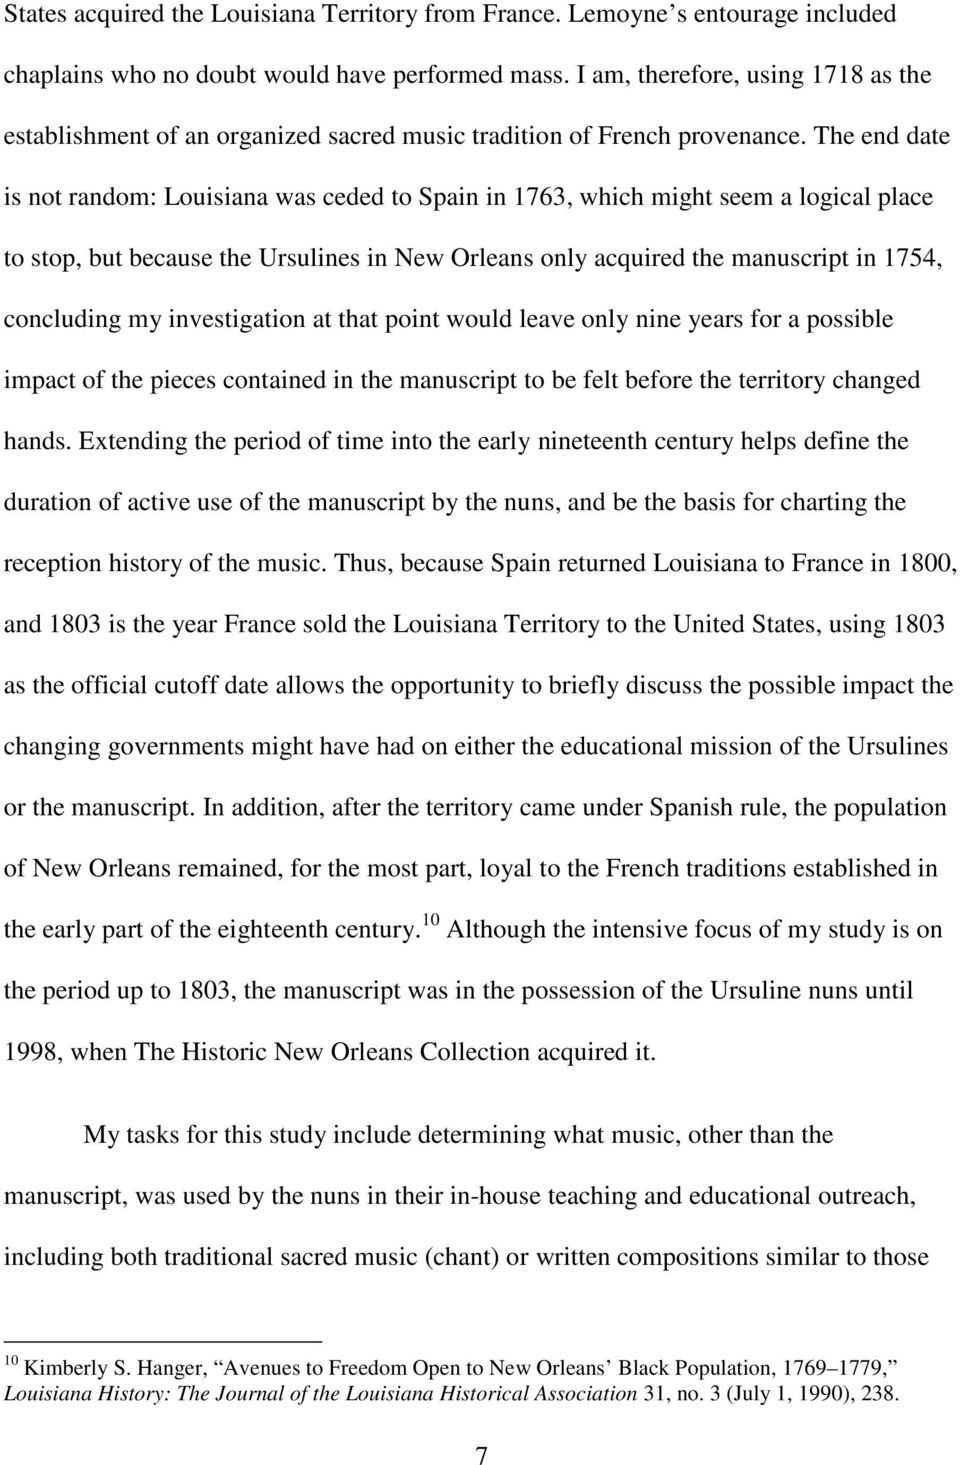 The end date is not random: Louisiana was ceded to Spain in 1763, which might seem a logical place to stop, but because the Ursulines in New Orleans only acquired the manuscript in 1754, concluding